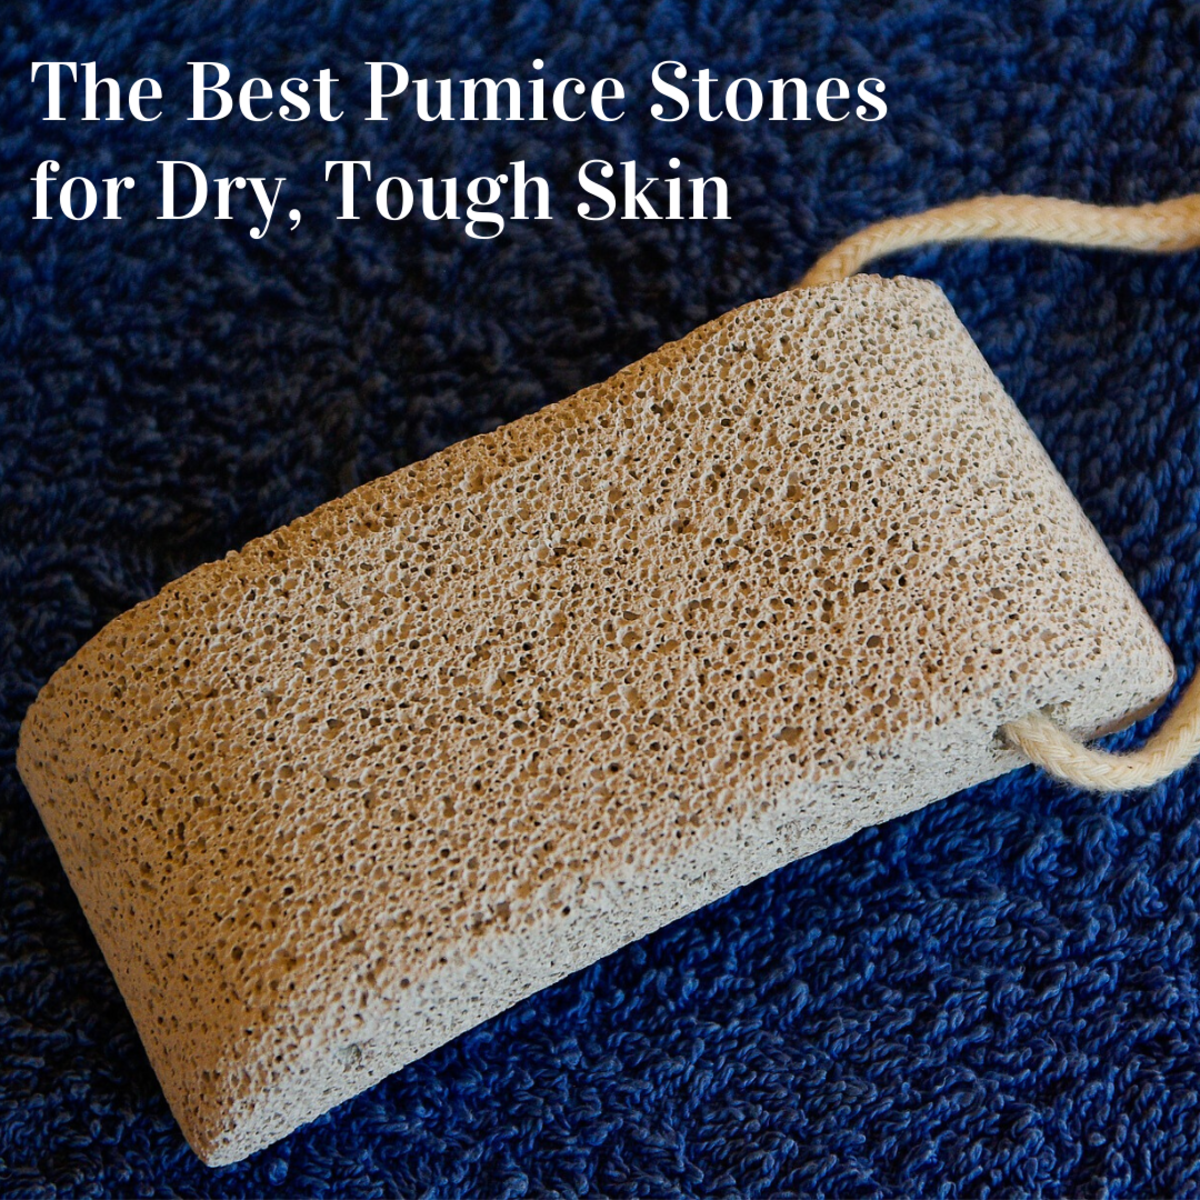 This article will list five of the best pumice stones to use on dry, toughened skin.